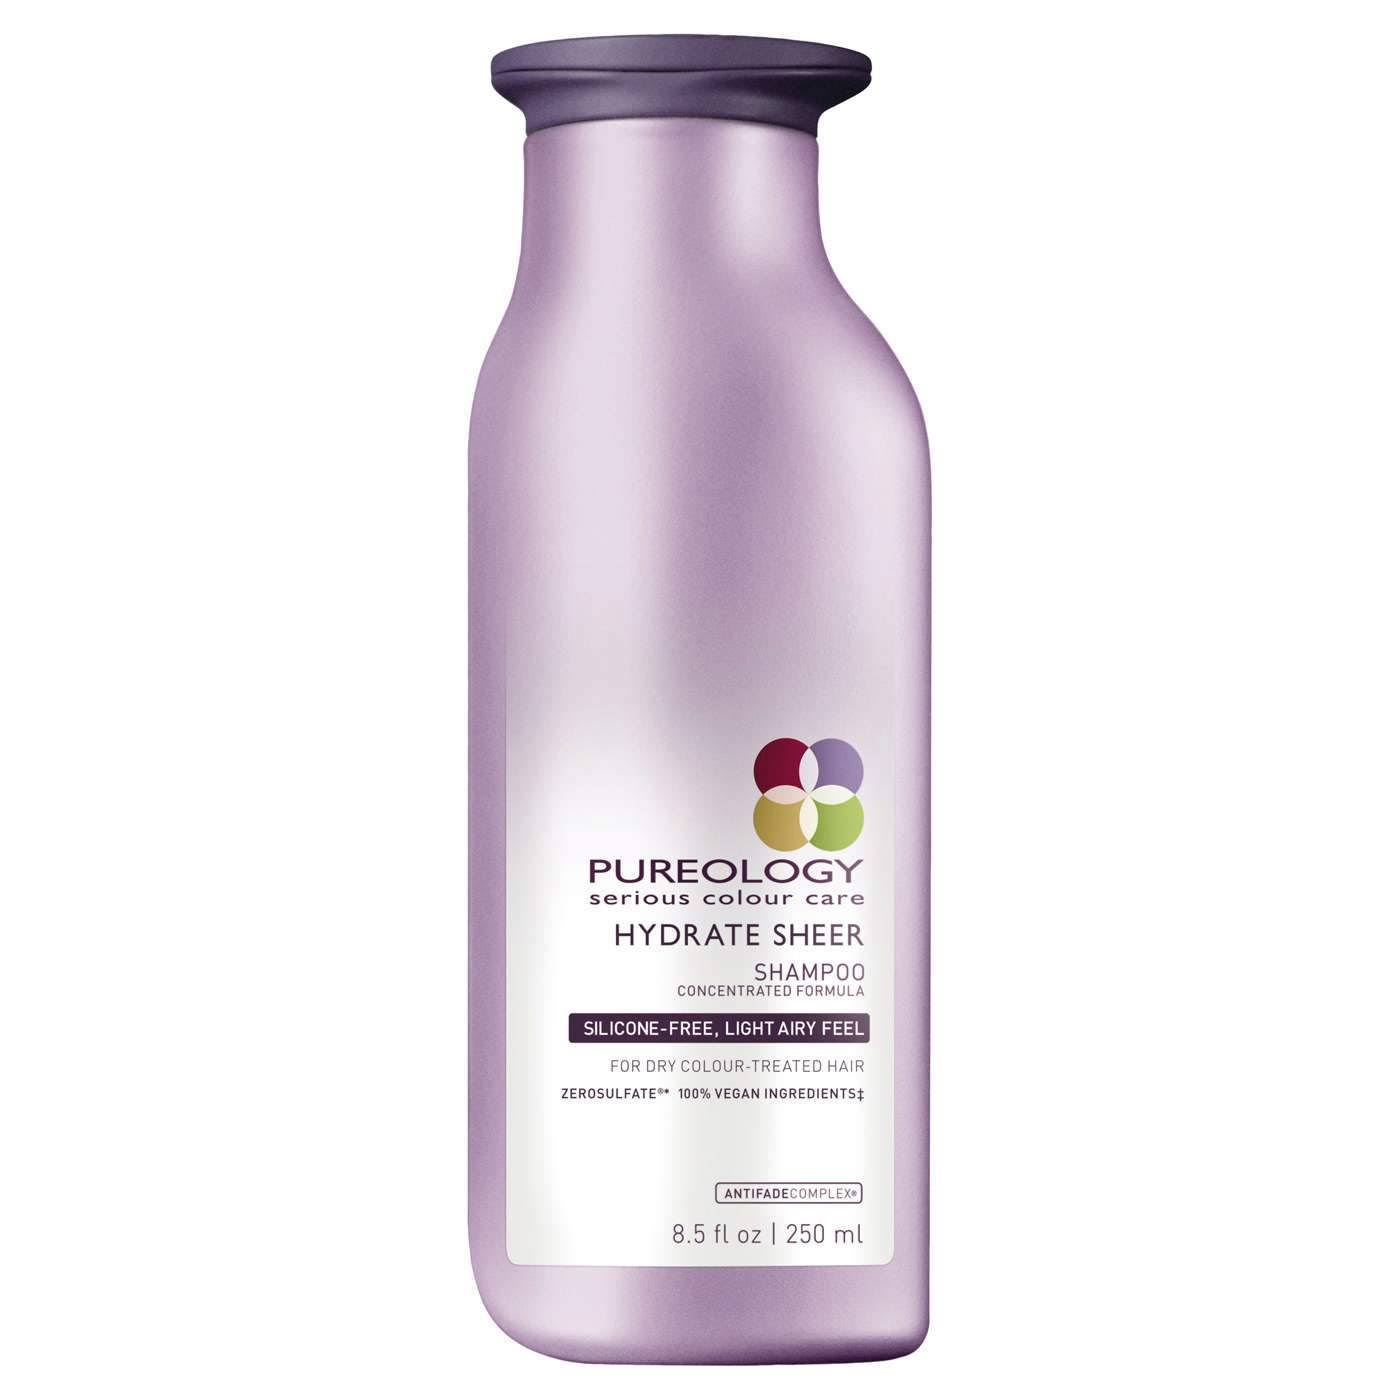 Pureology Hydrate Sheer Shampoo - 8.5 oz